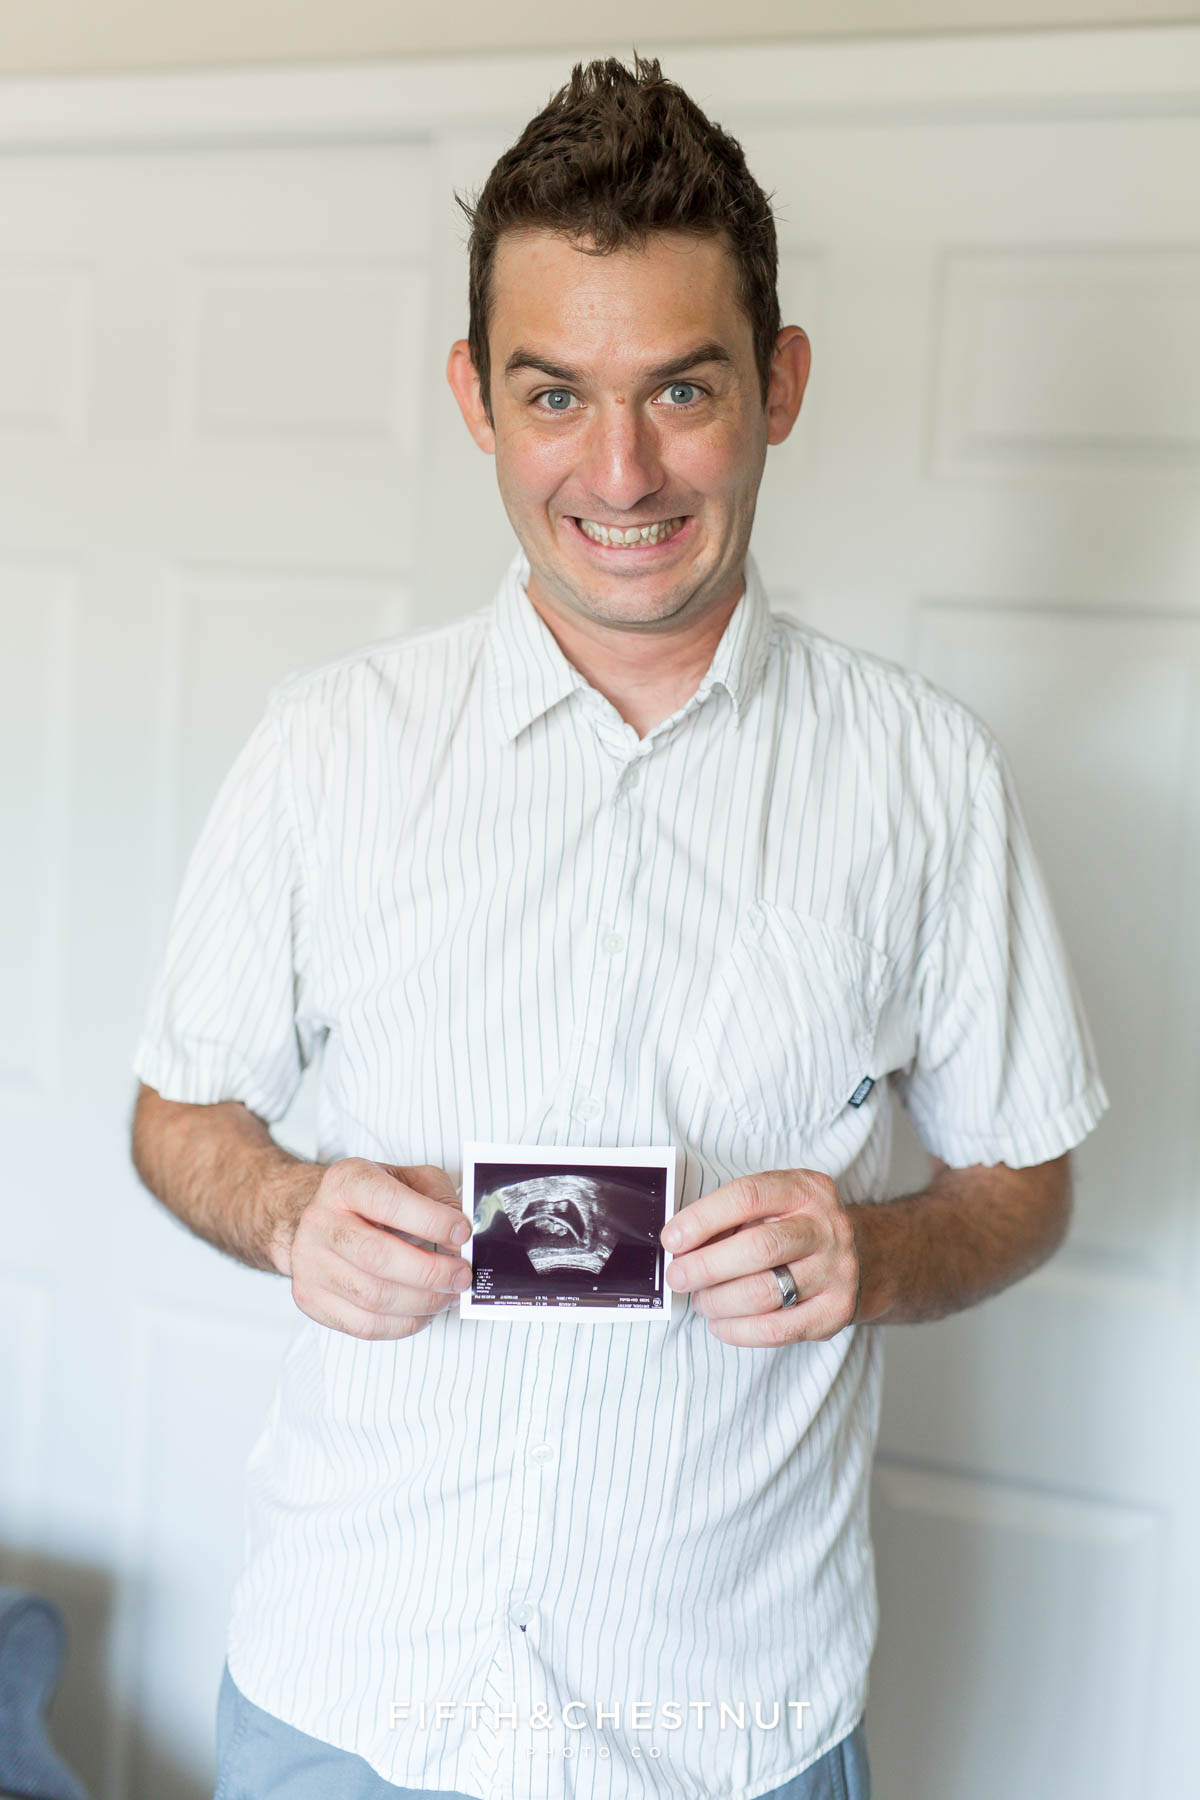 Father of twins freaks out holding ultrasound in a funny way